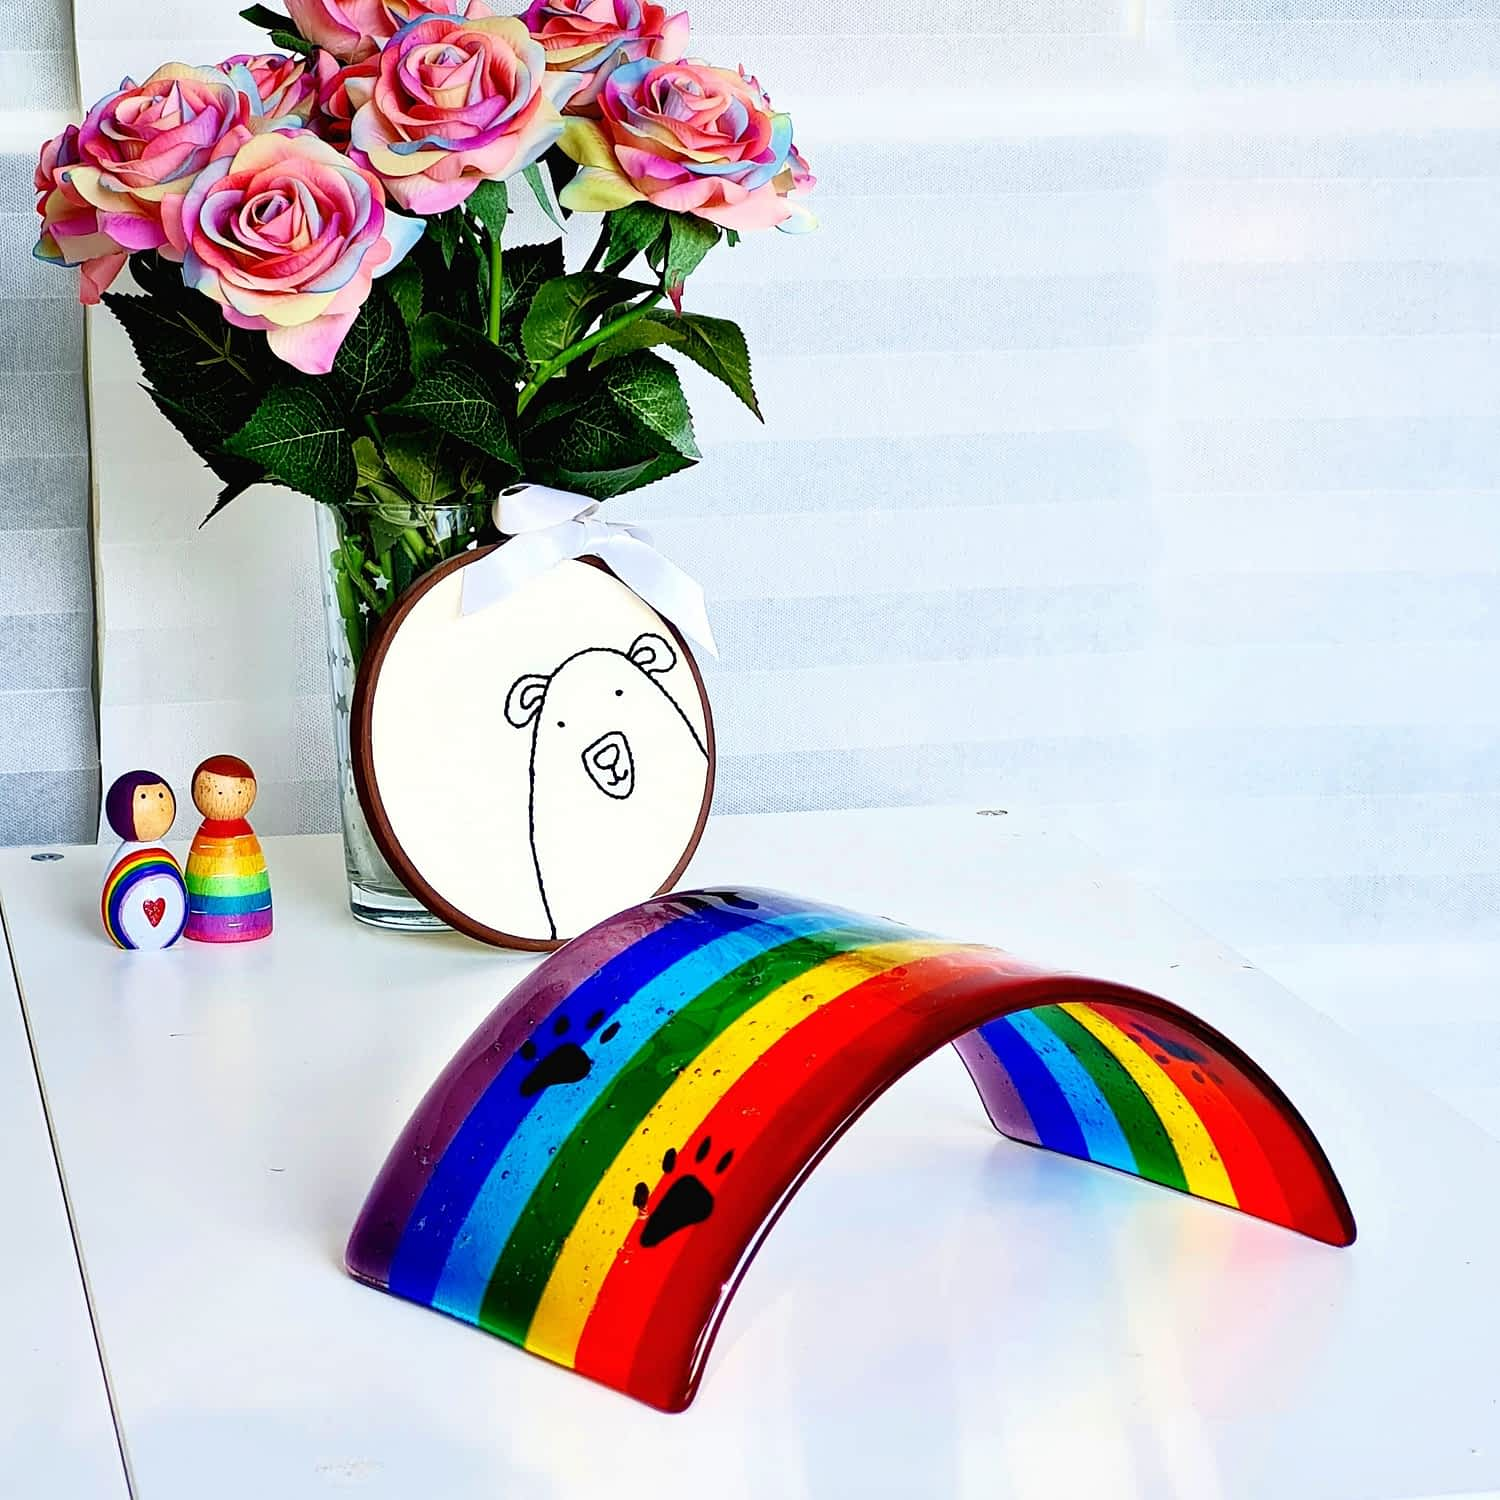 A glass Rainbow Bridge with black dog pawprints hand drawn in enamel on a white surface with rainbow peg dolls, rainbow flowers and a bear embroidery hoop in the background.